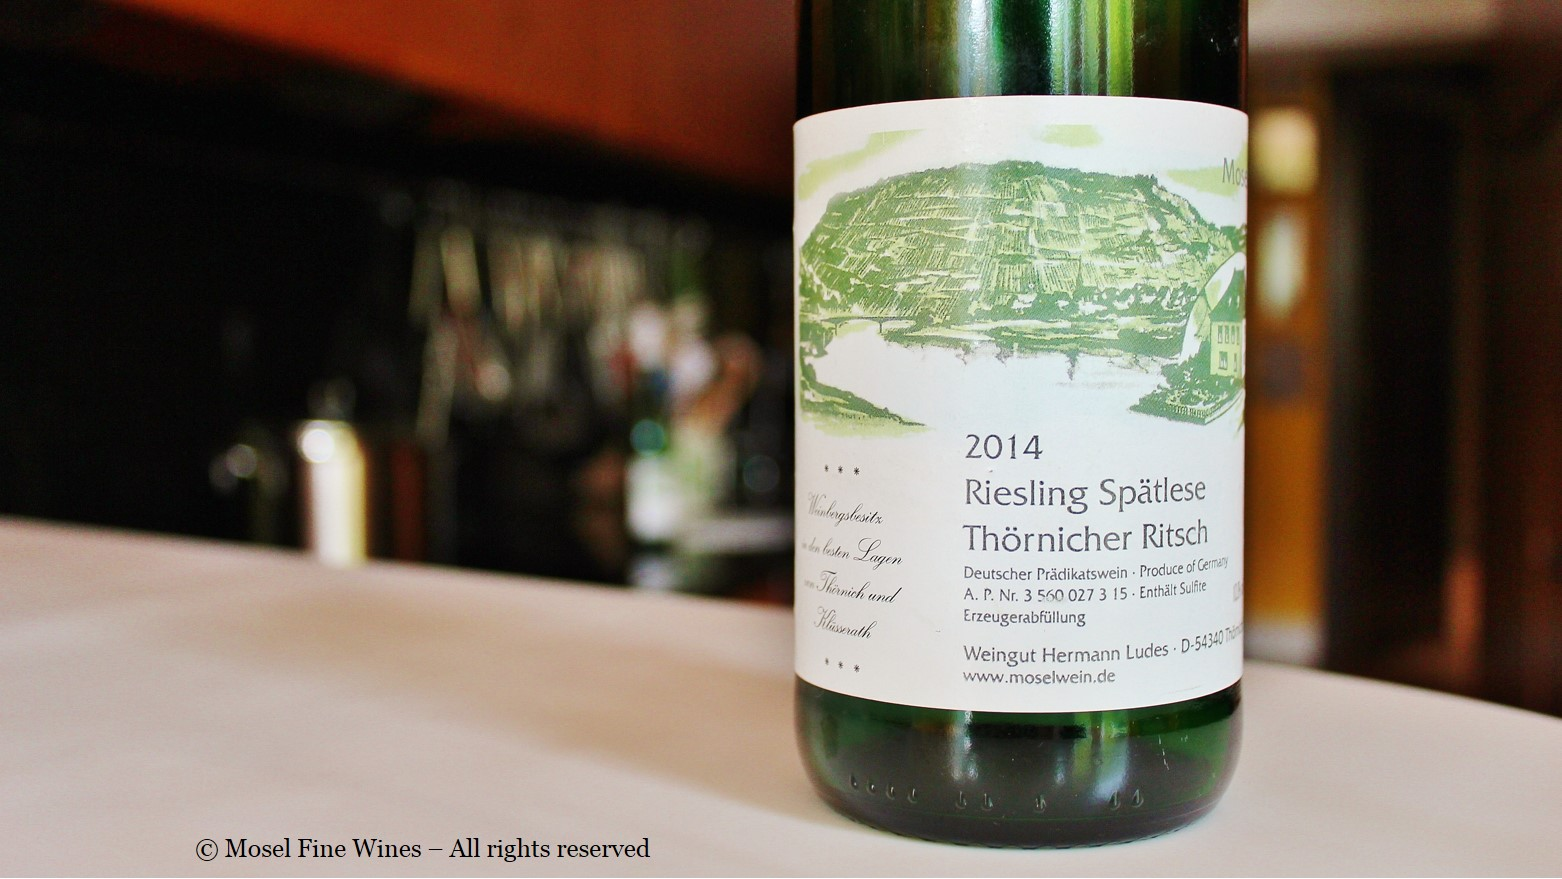 Wine from the thorn without yeast - tasty and unusual